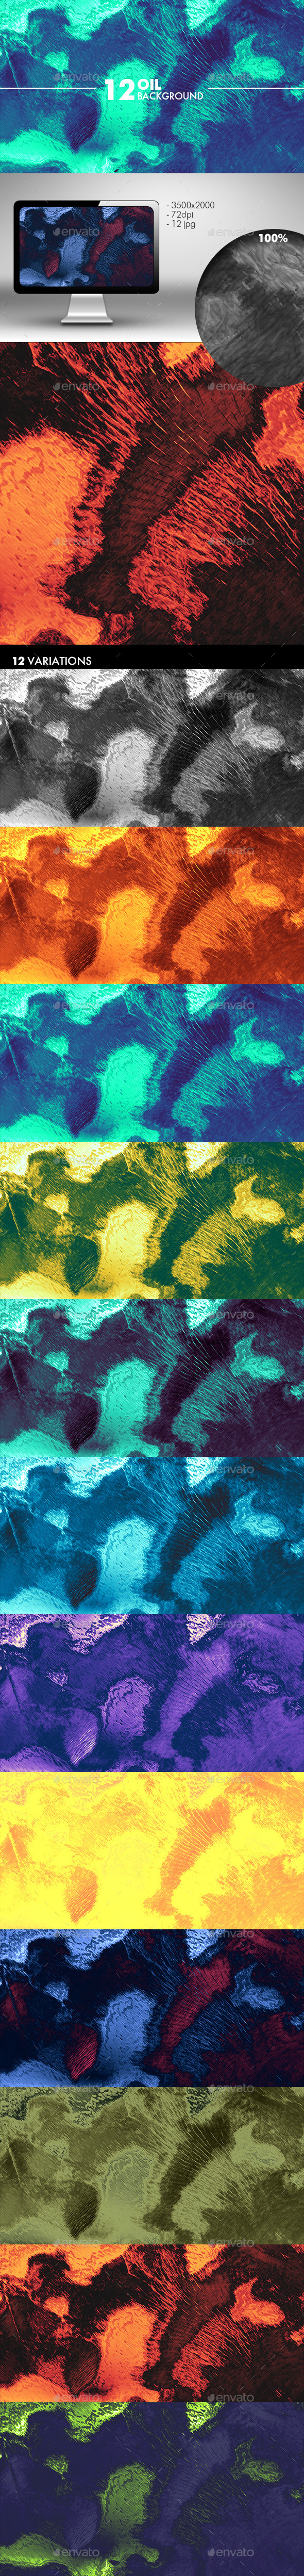 Oil Background - Abstract Backgrounds